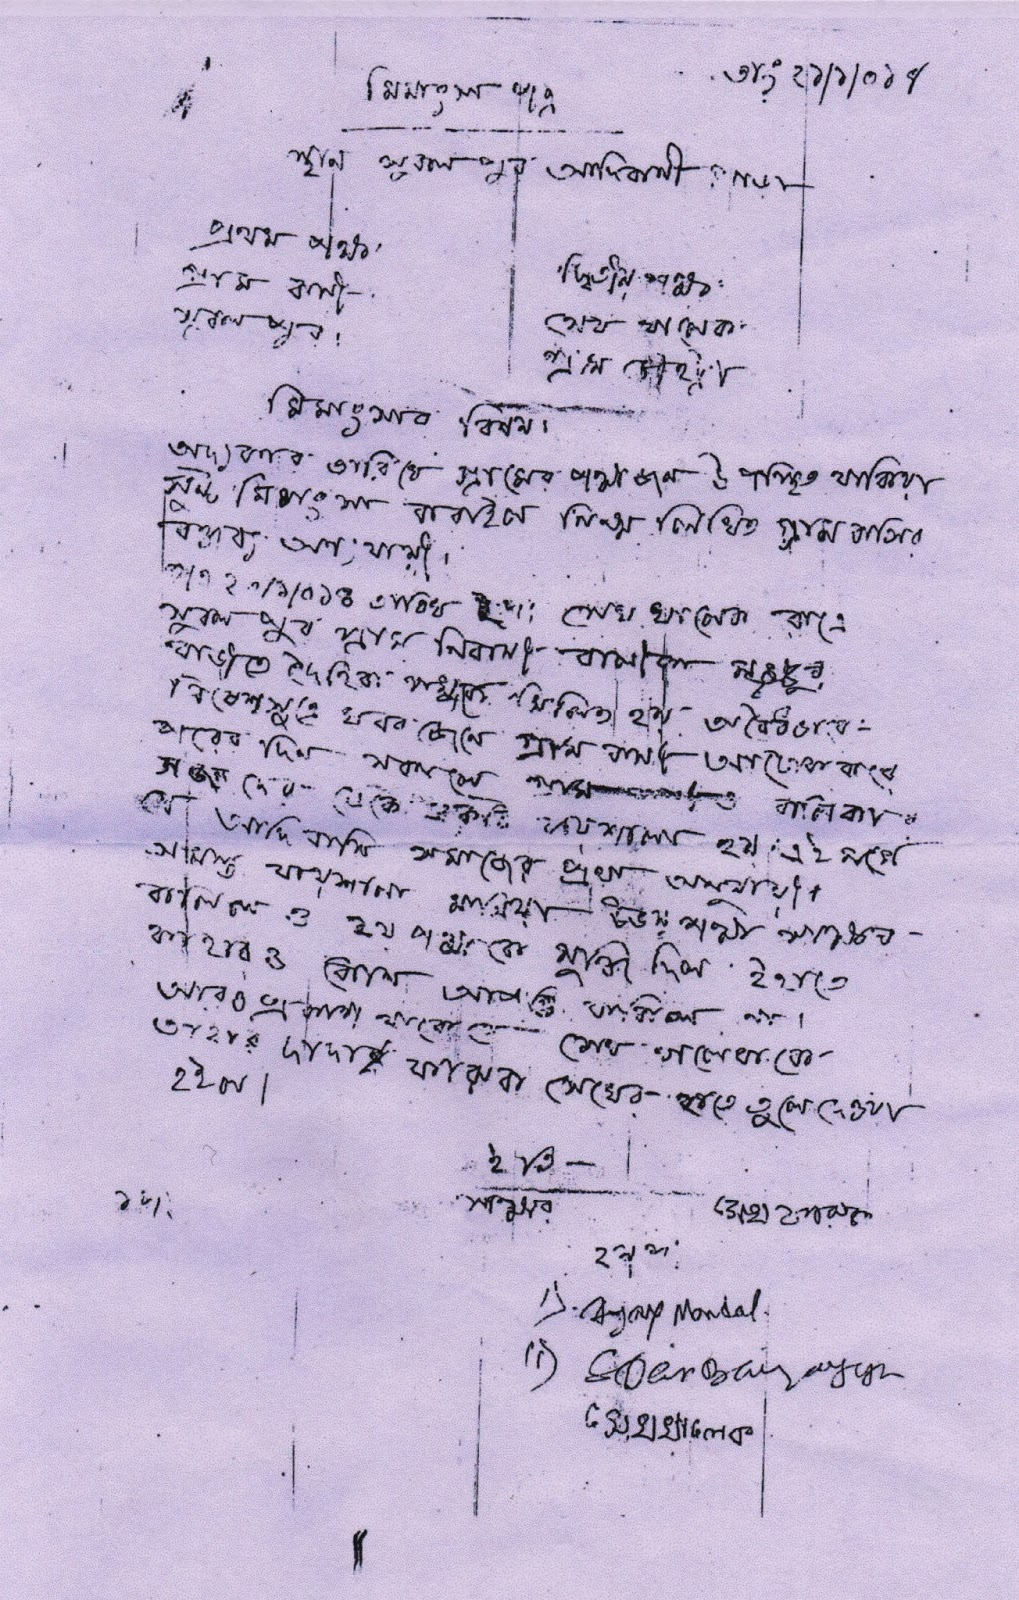 Birbhum Rape Case Proof- Decision by Gram Sabha to get them married (no mention of rape)